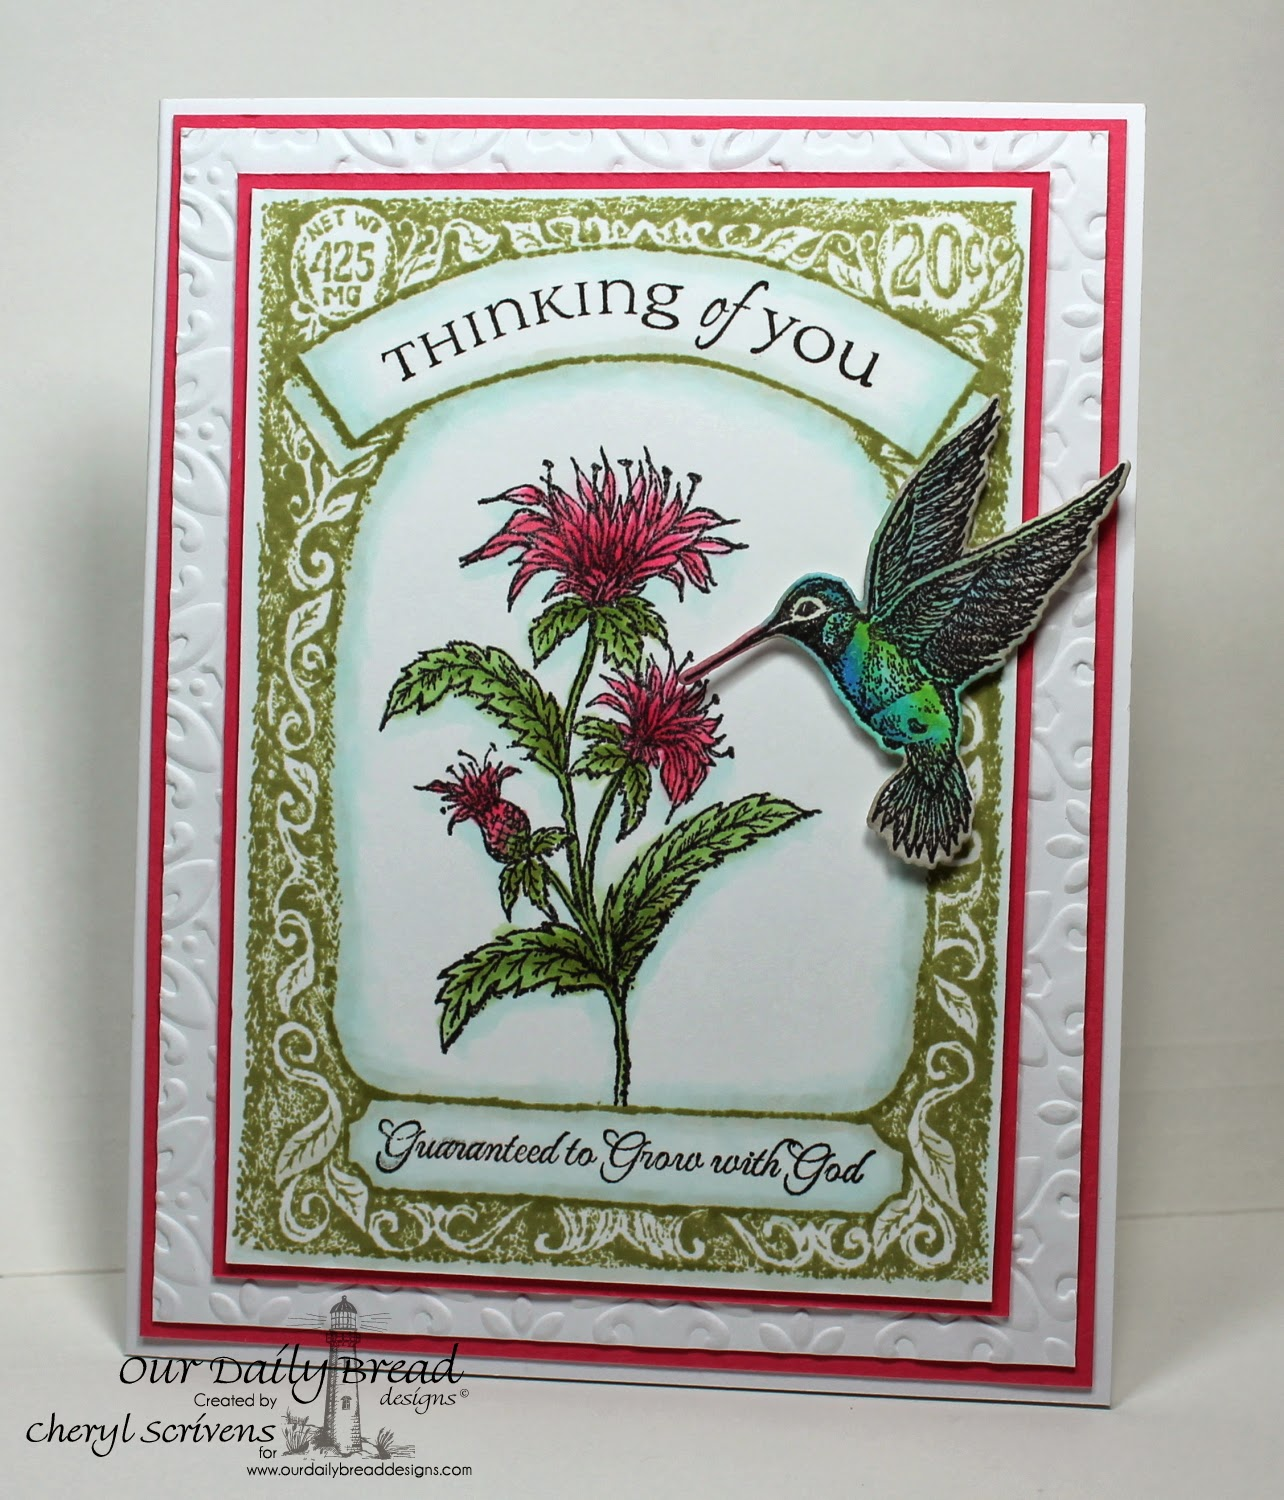 Our Daily Bread Designs, ODBDSLC195, Bee Balm, Hummingbird, ODBD Custom Hummingbird Die, All Occasion Sentiments, Seed Packet, CherylQuilts, Designed by Cheryl Scrivens